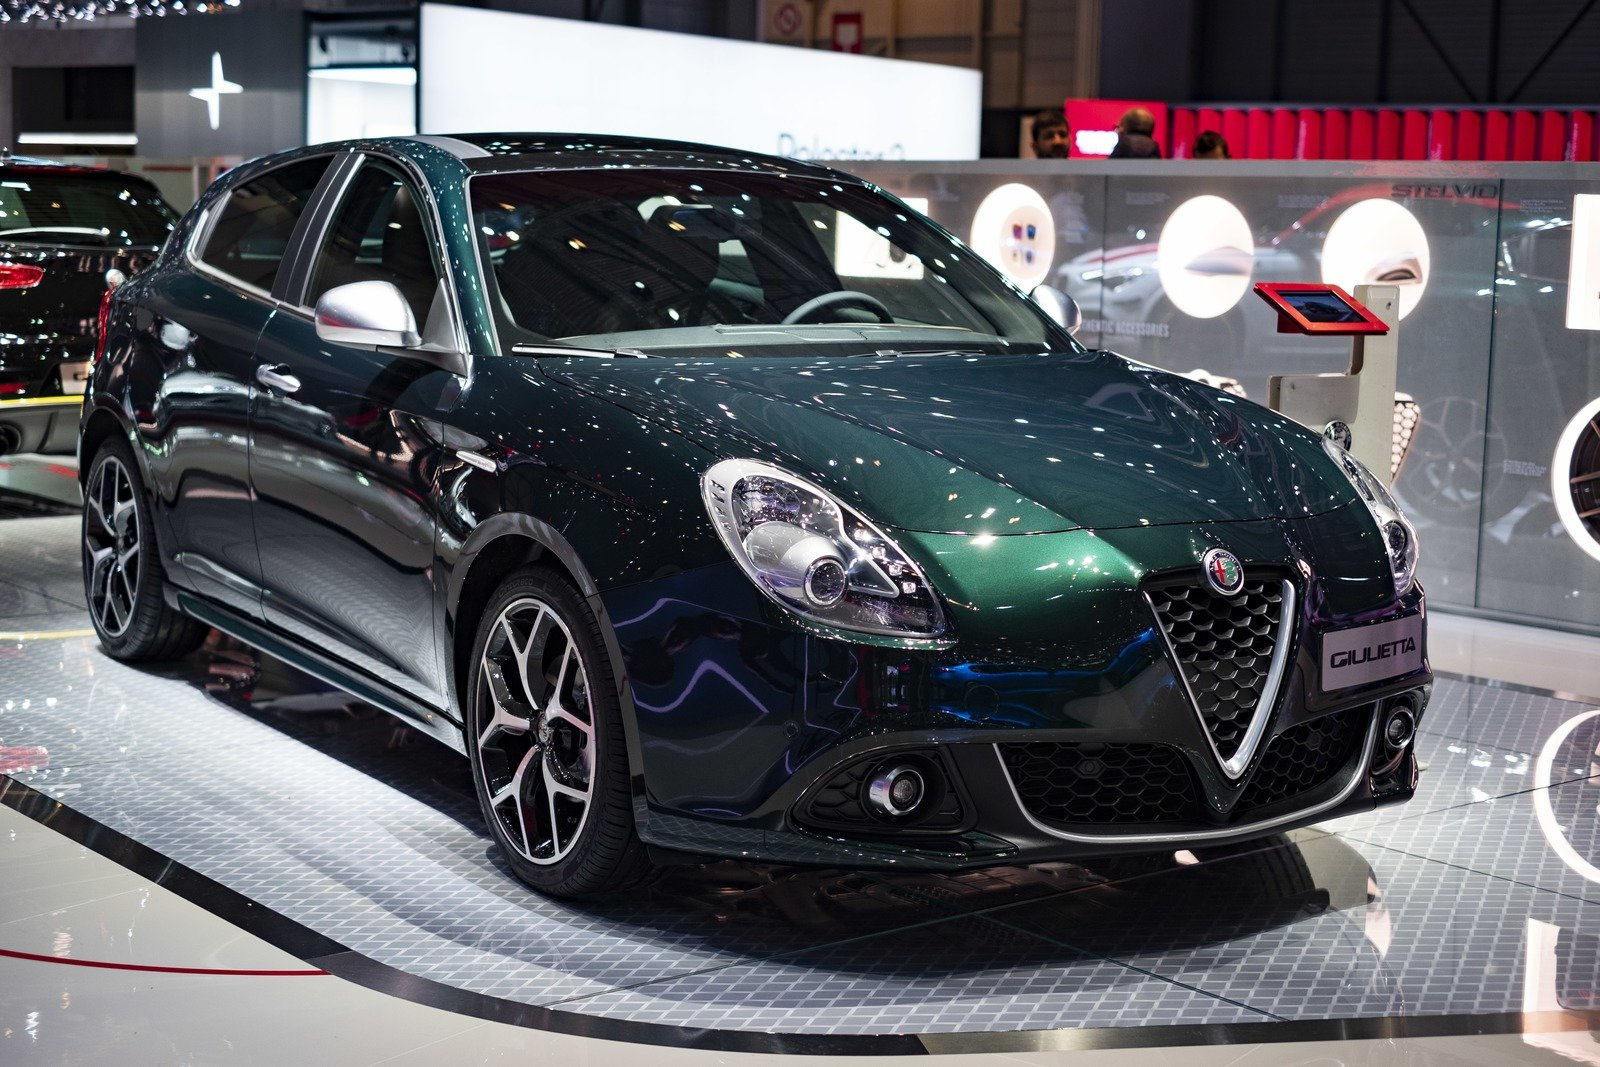 Land Rover Models >> The Alfa Romeo Giulietta Refuses To Die As Alfa Introduces Updates For The 2020 Model Year ...